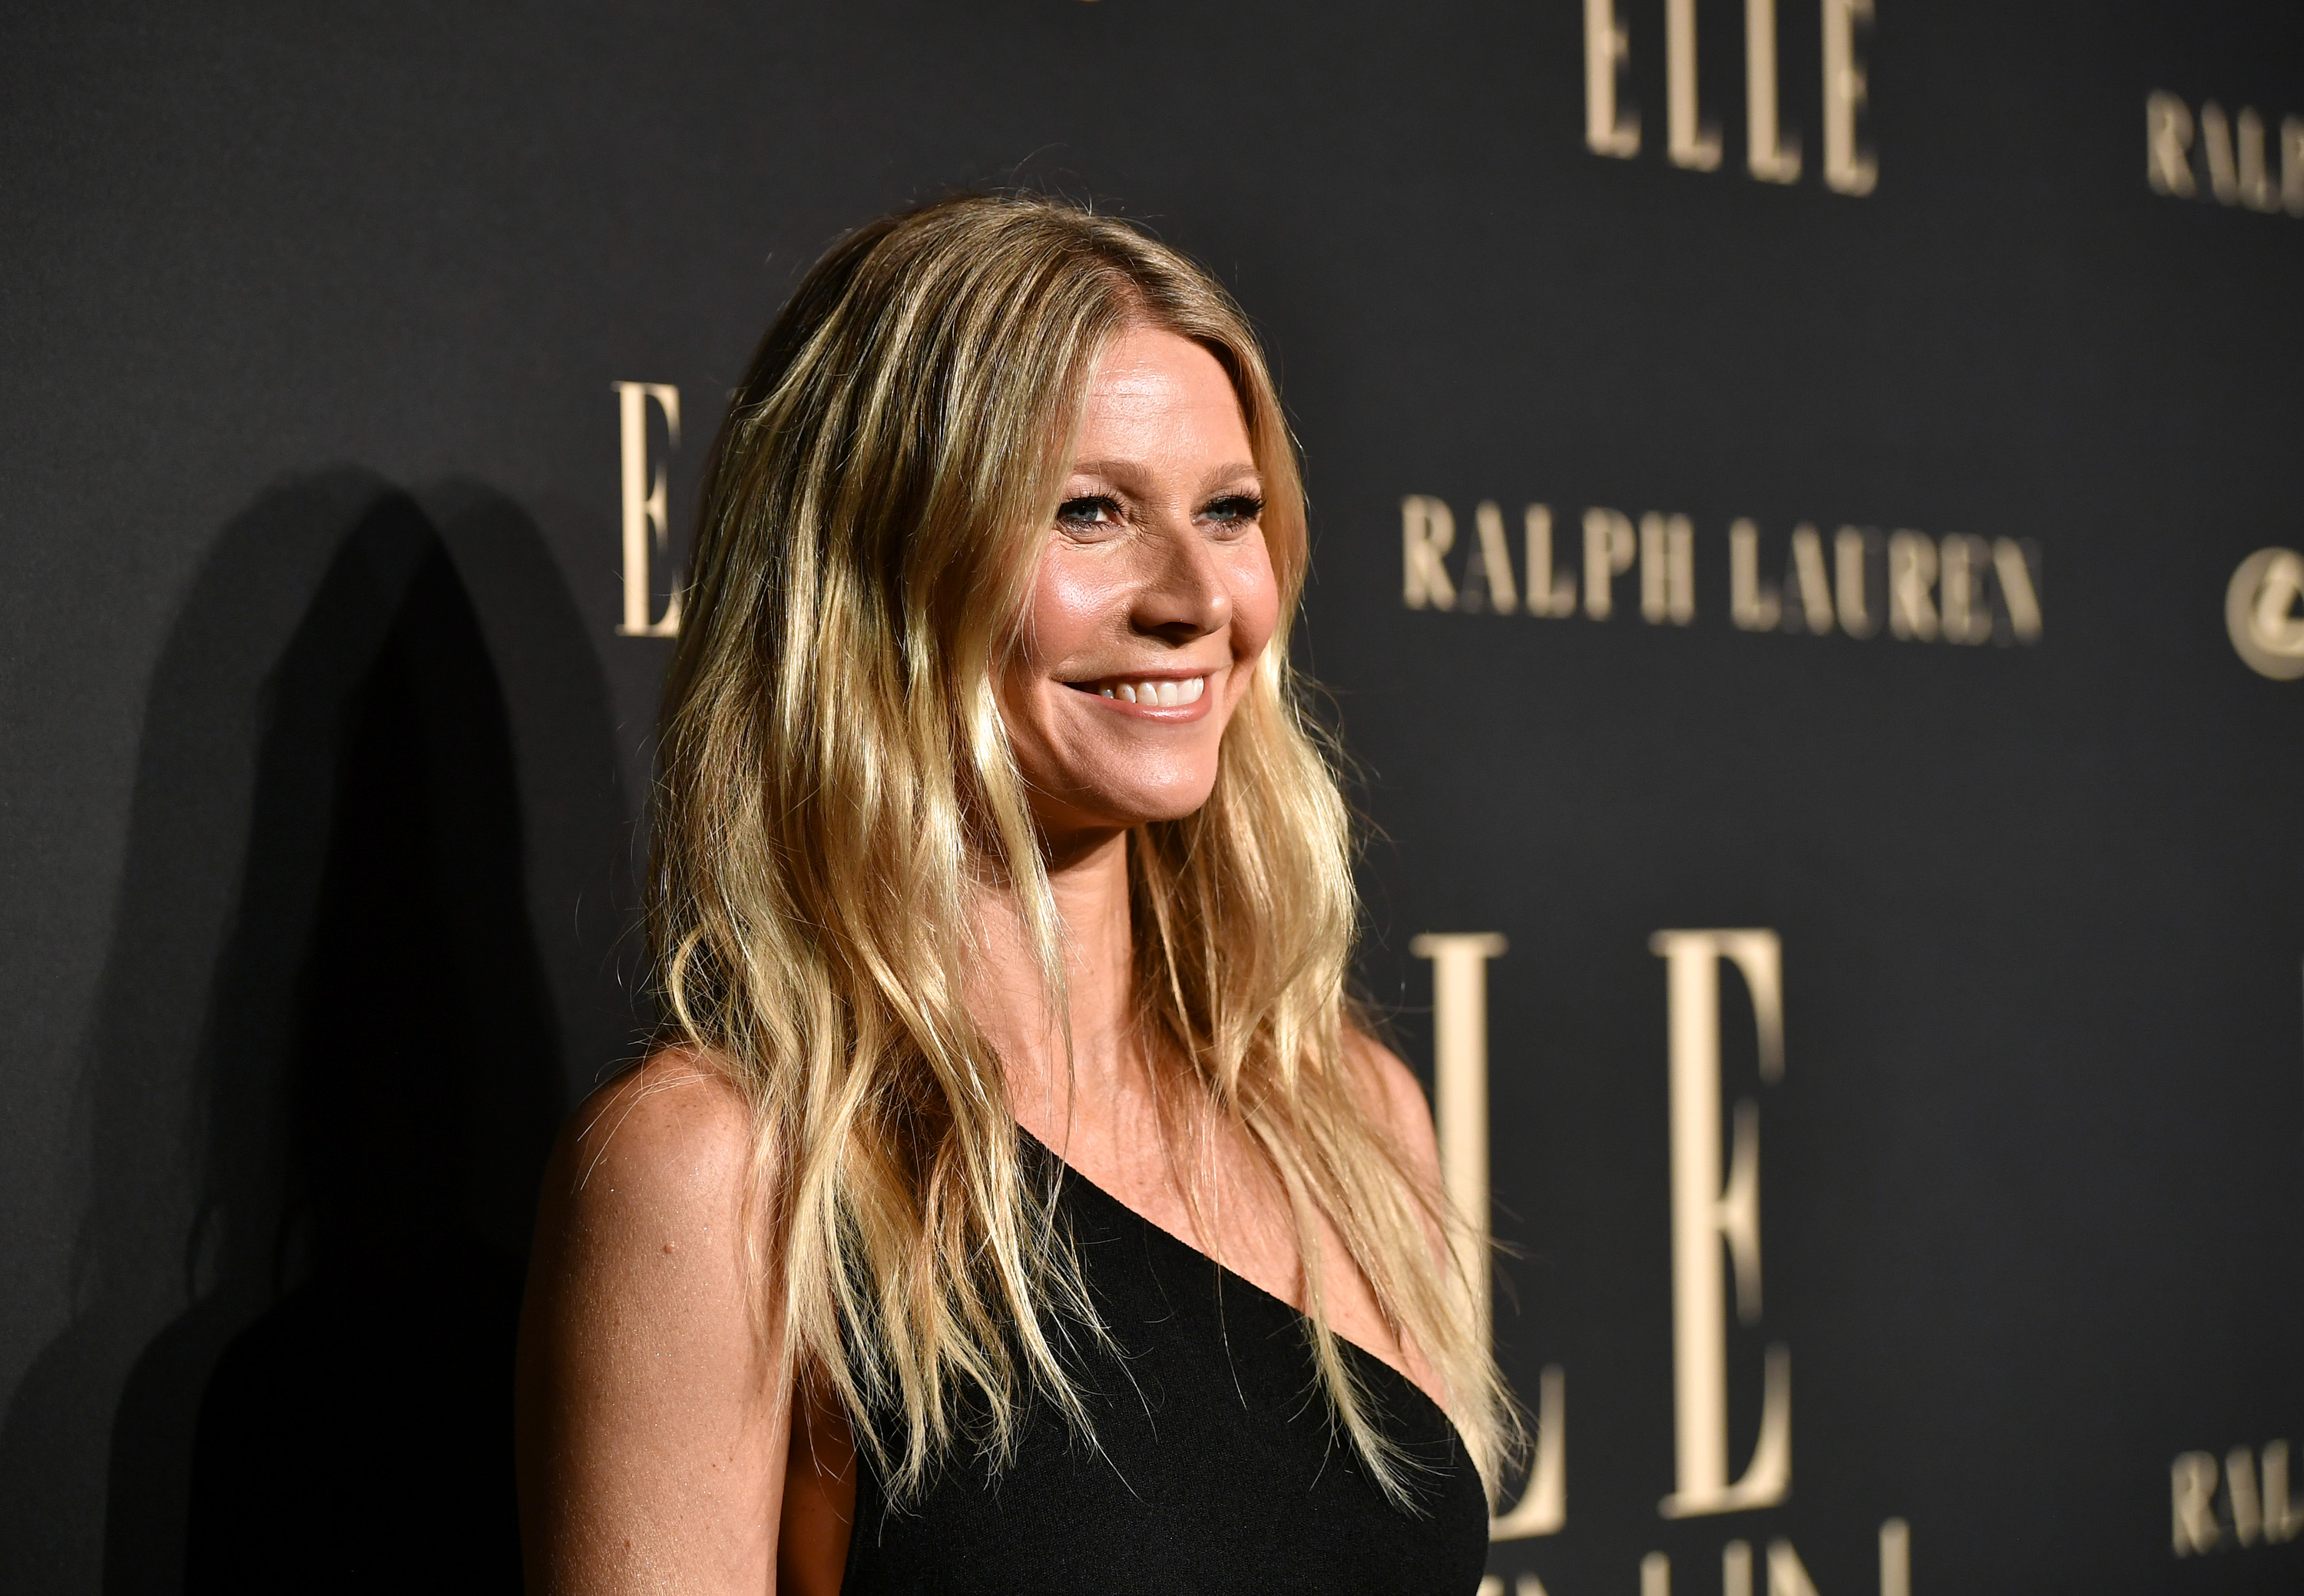 Gwyneth Paltrow Uses This $8 Drugstore Conditioner to Get Long, Gorgeous Hair